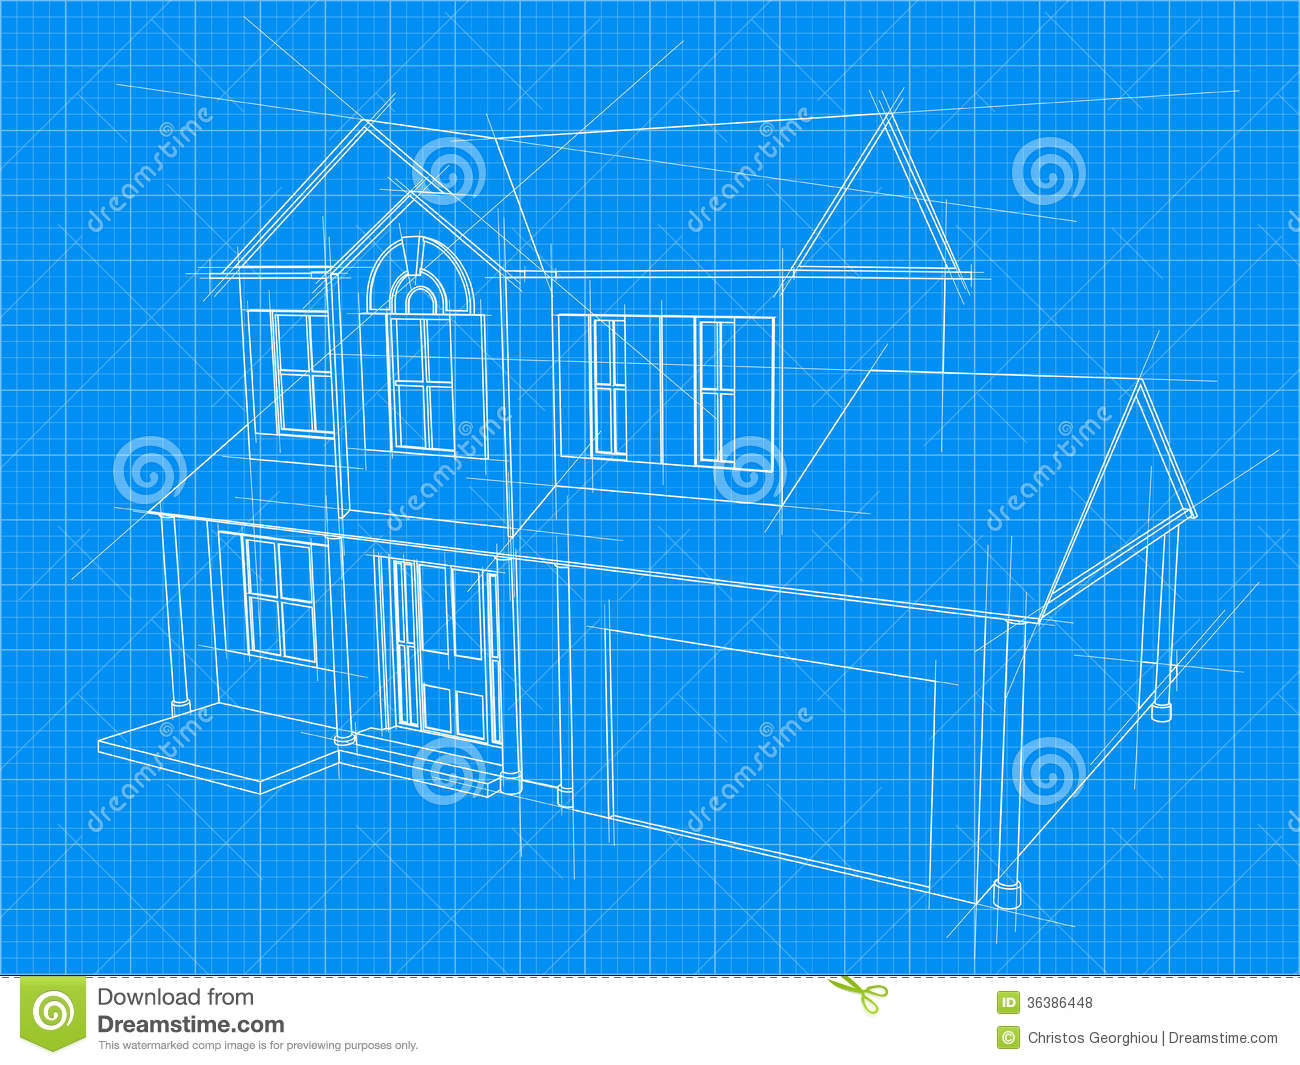 Remarkable House Blueprint Royalty Free Stock Photos Image 36386448 Largest Home Design Picture Inspirations Pitcheantrous